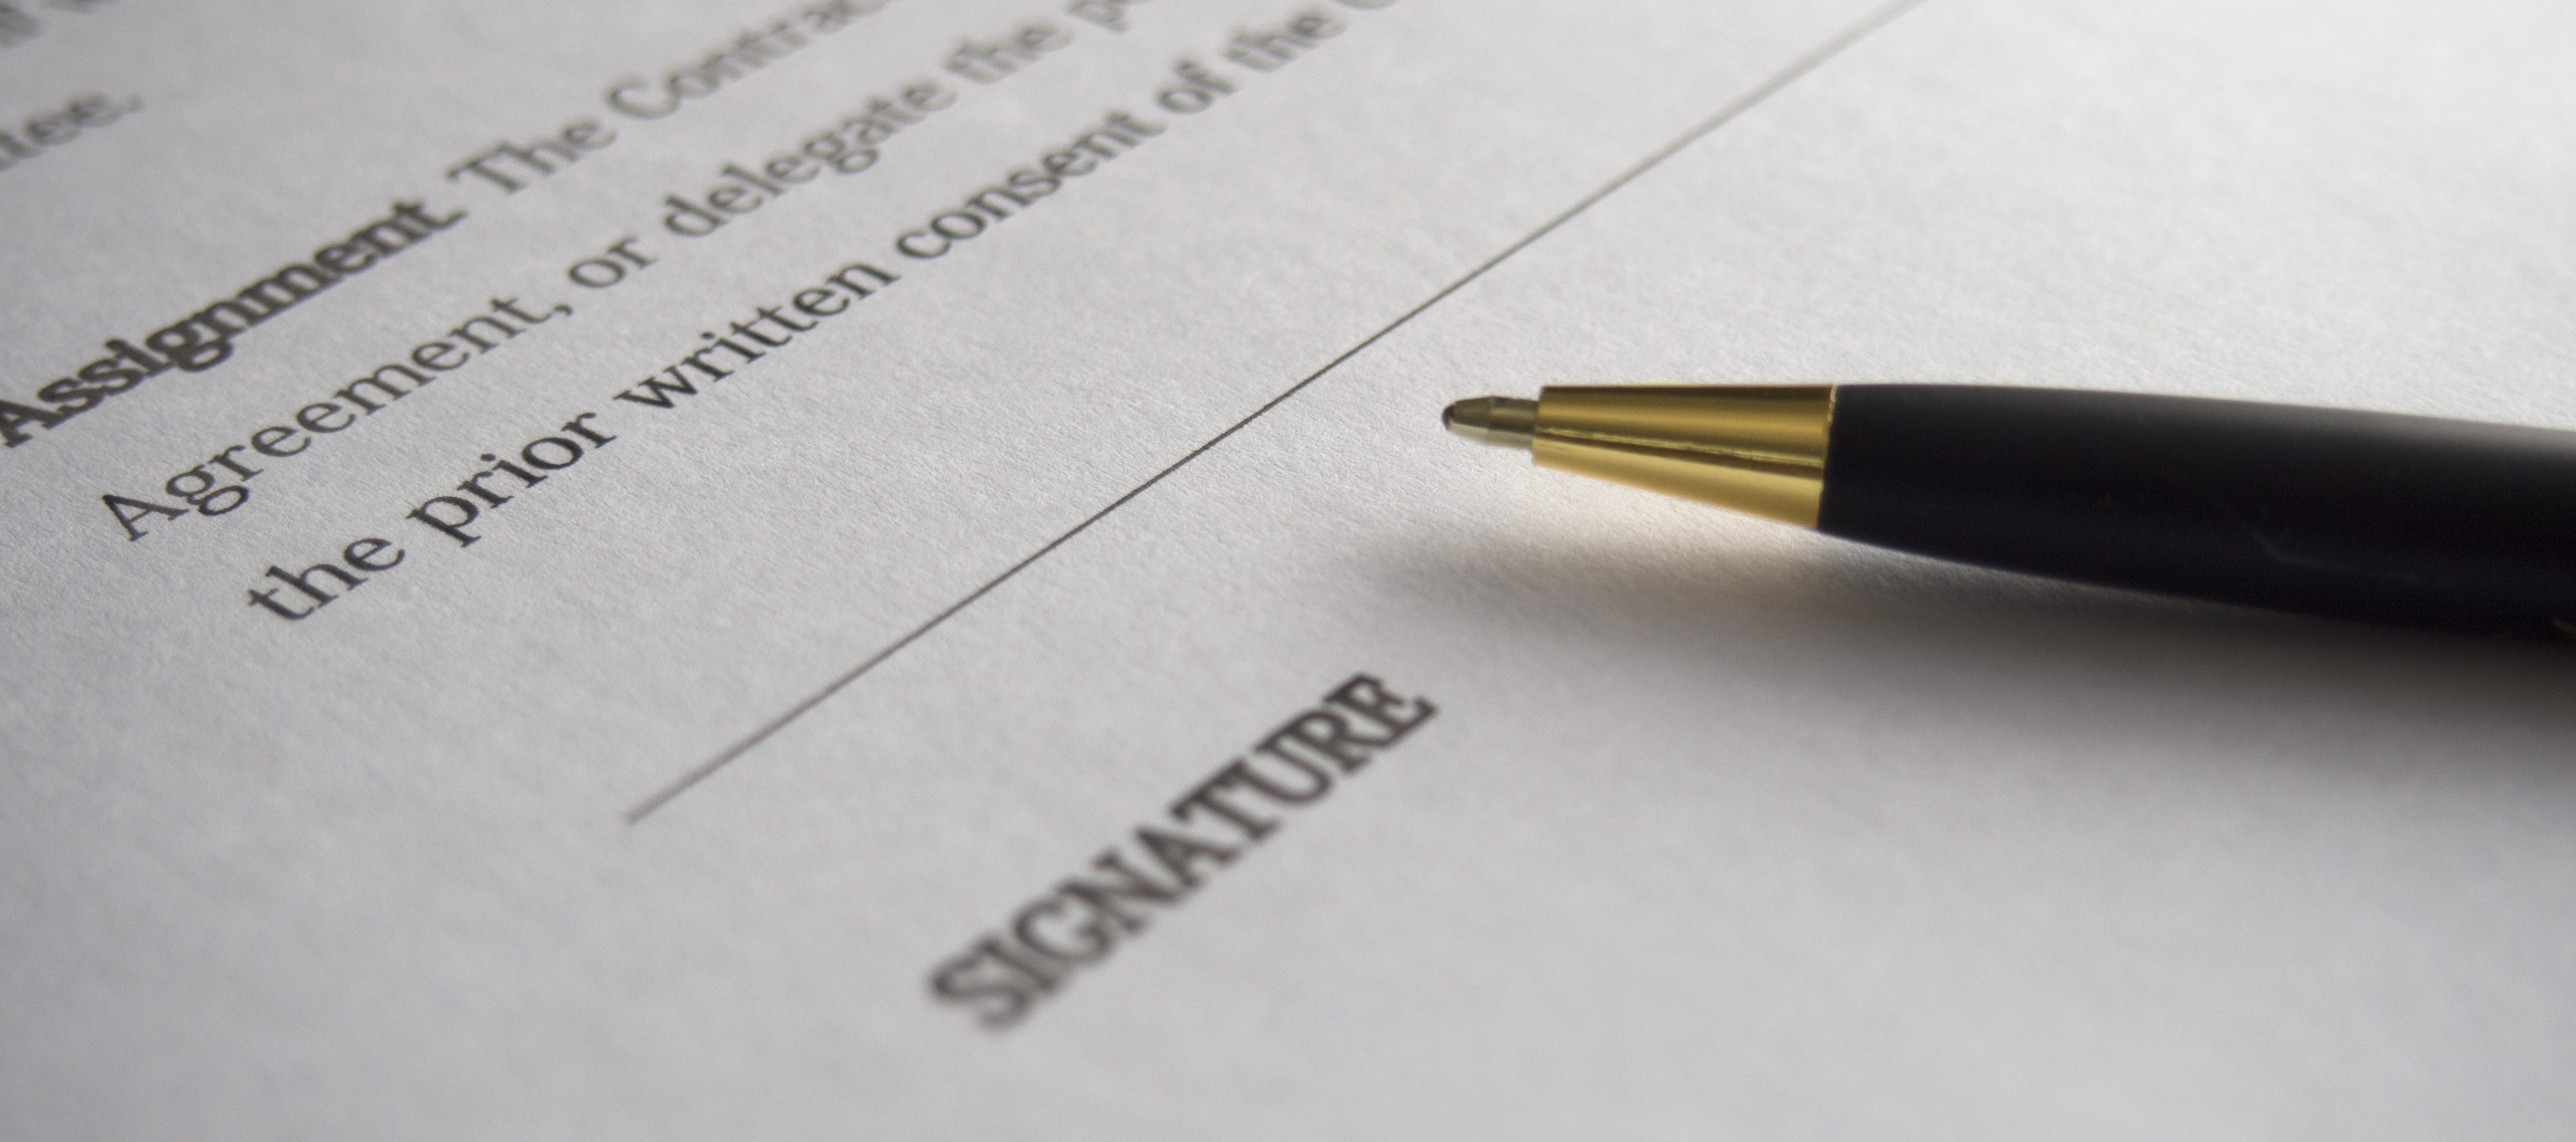 How can one signature put you at financial risk?